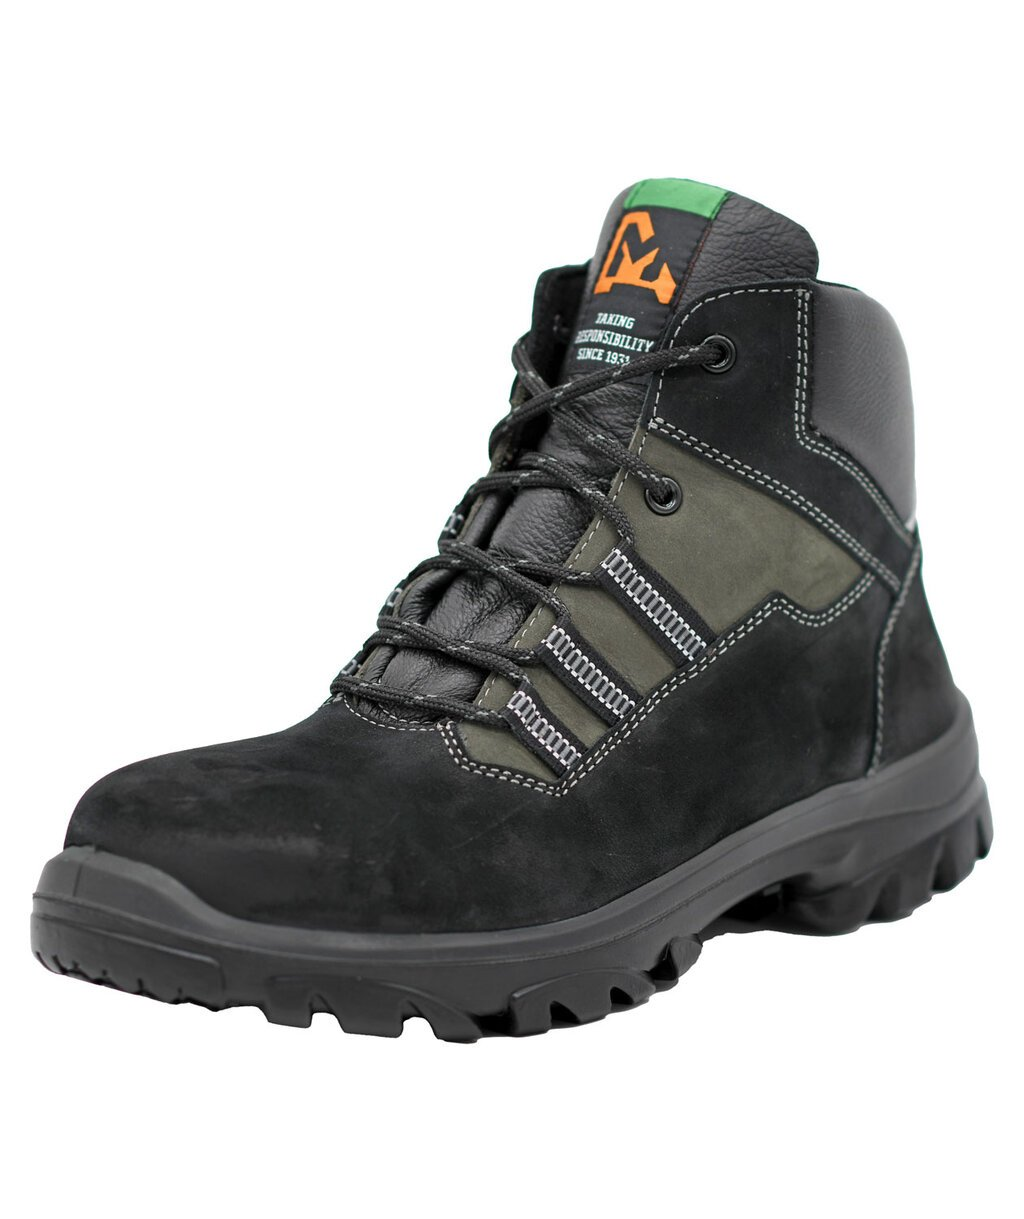 Emma Everon XD safety bootees S2, Black